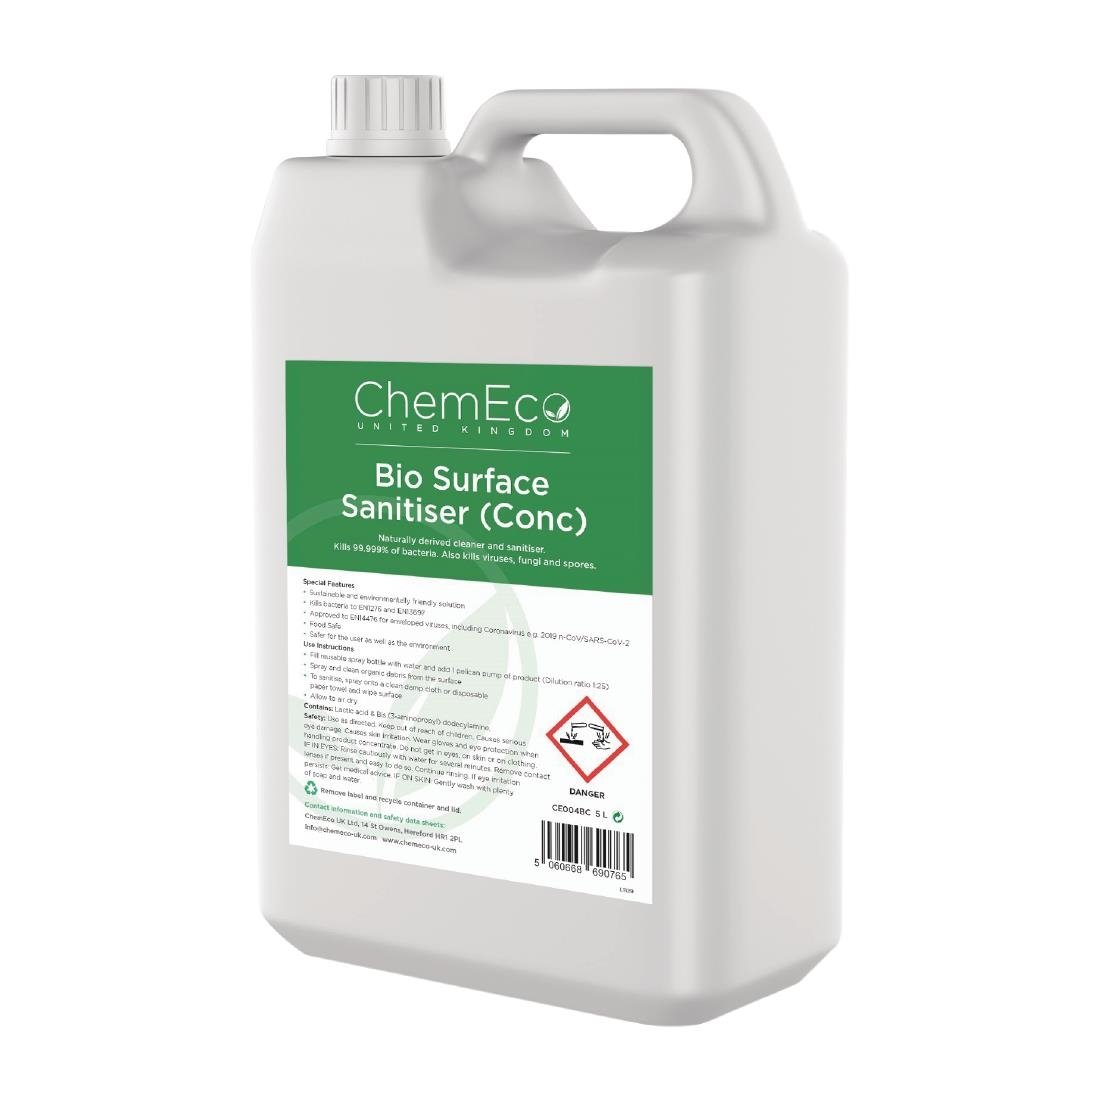 Image of ChemEco Bio Surface Sanitiser Concentrate 5Ltr (Pack of 2) Pack of 2